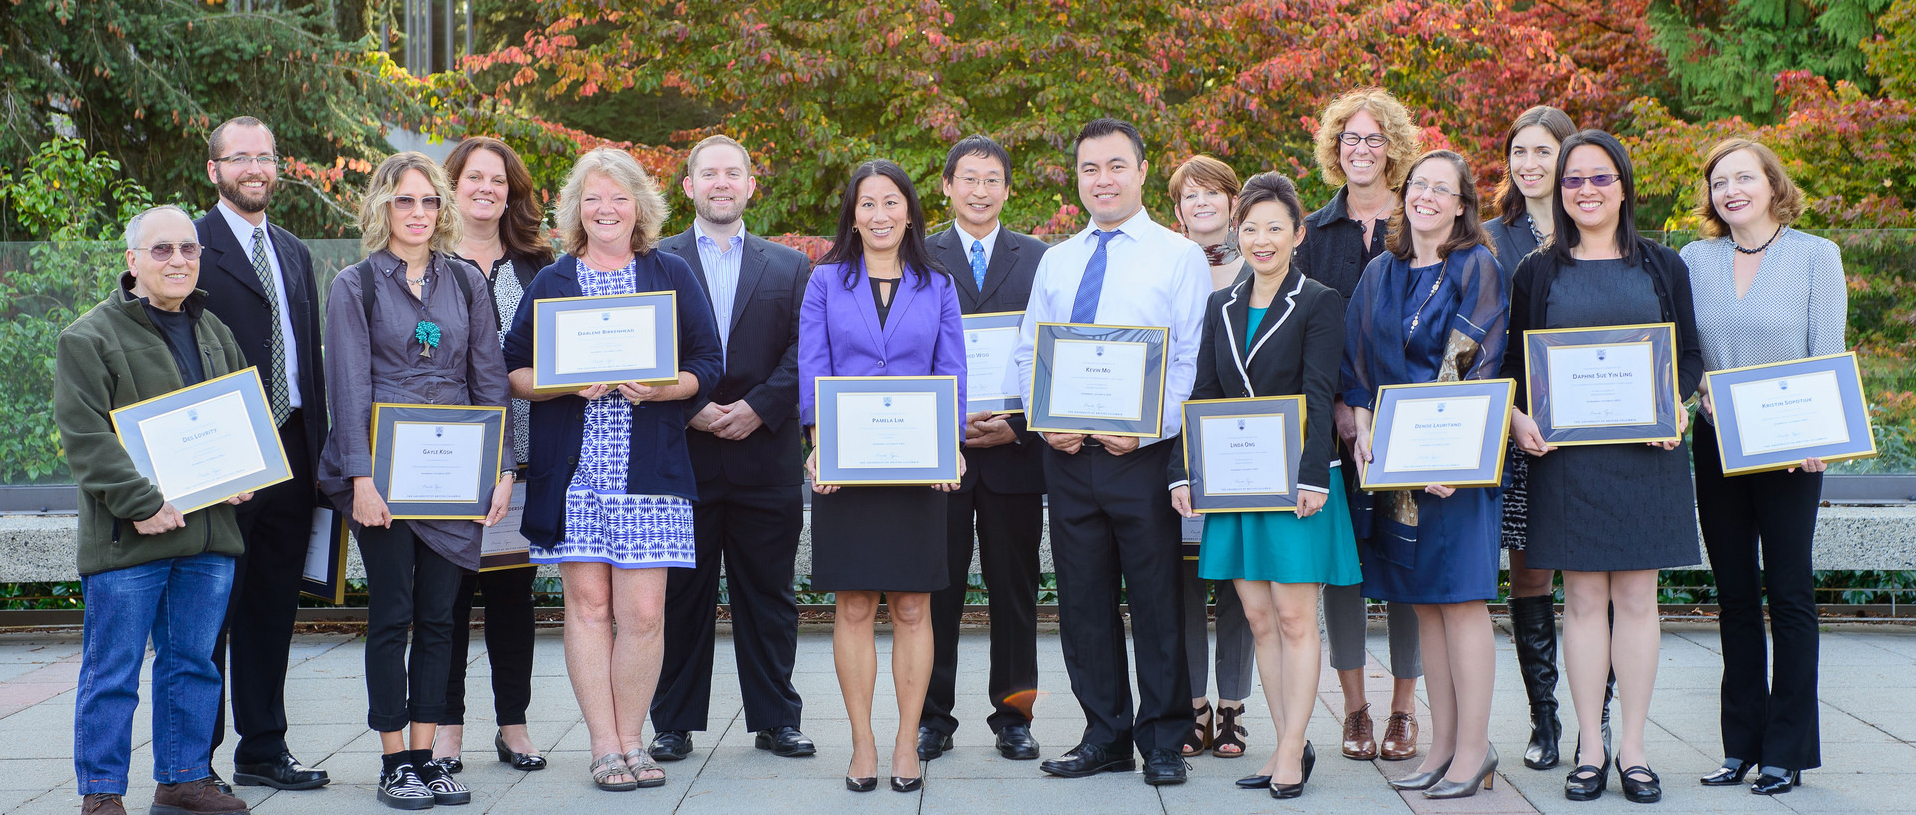 2015-President-Awards-for-Staff-cropped